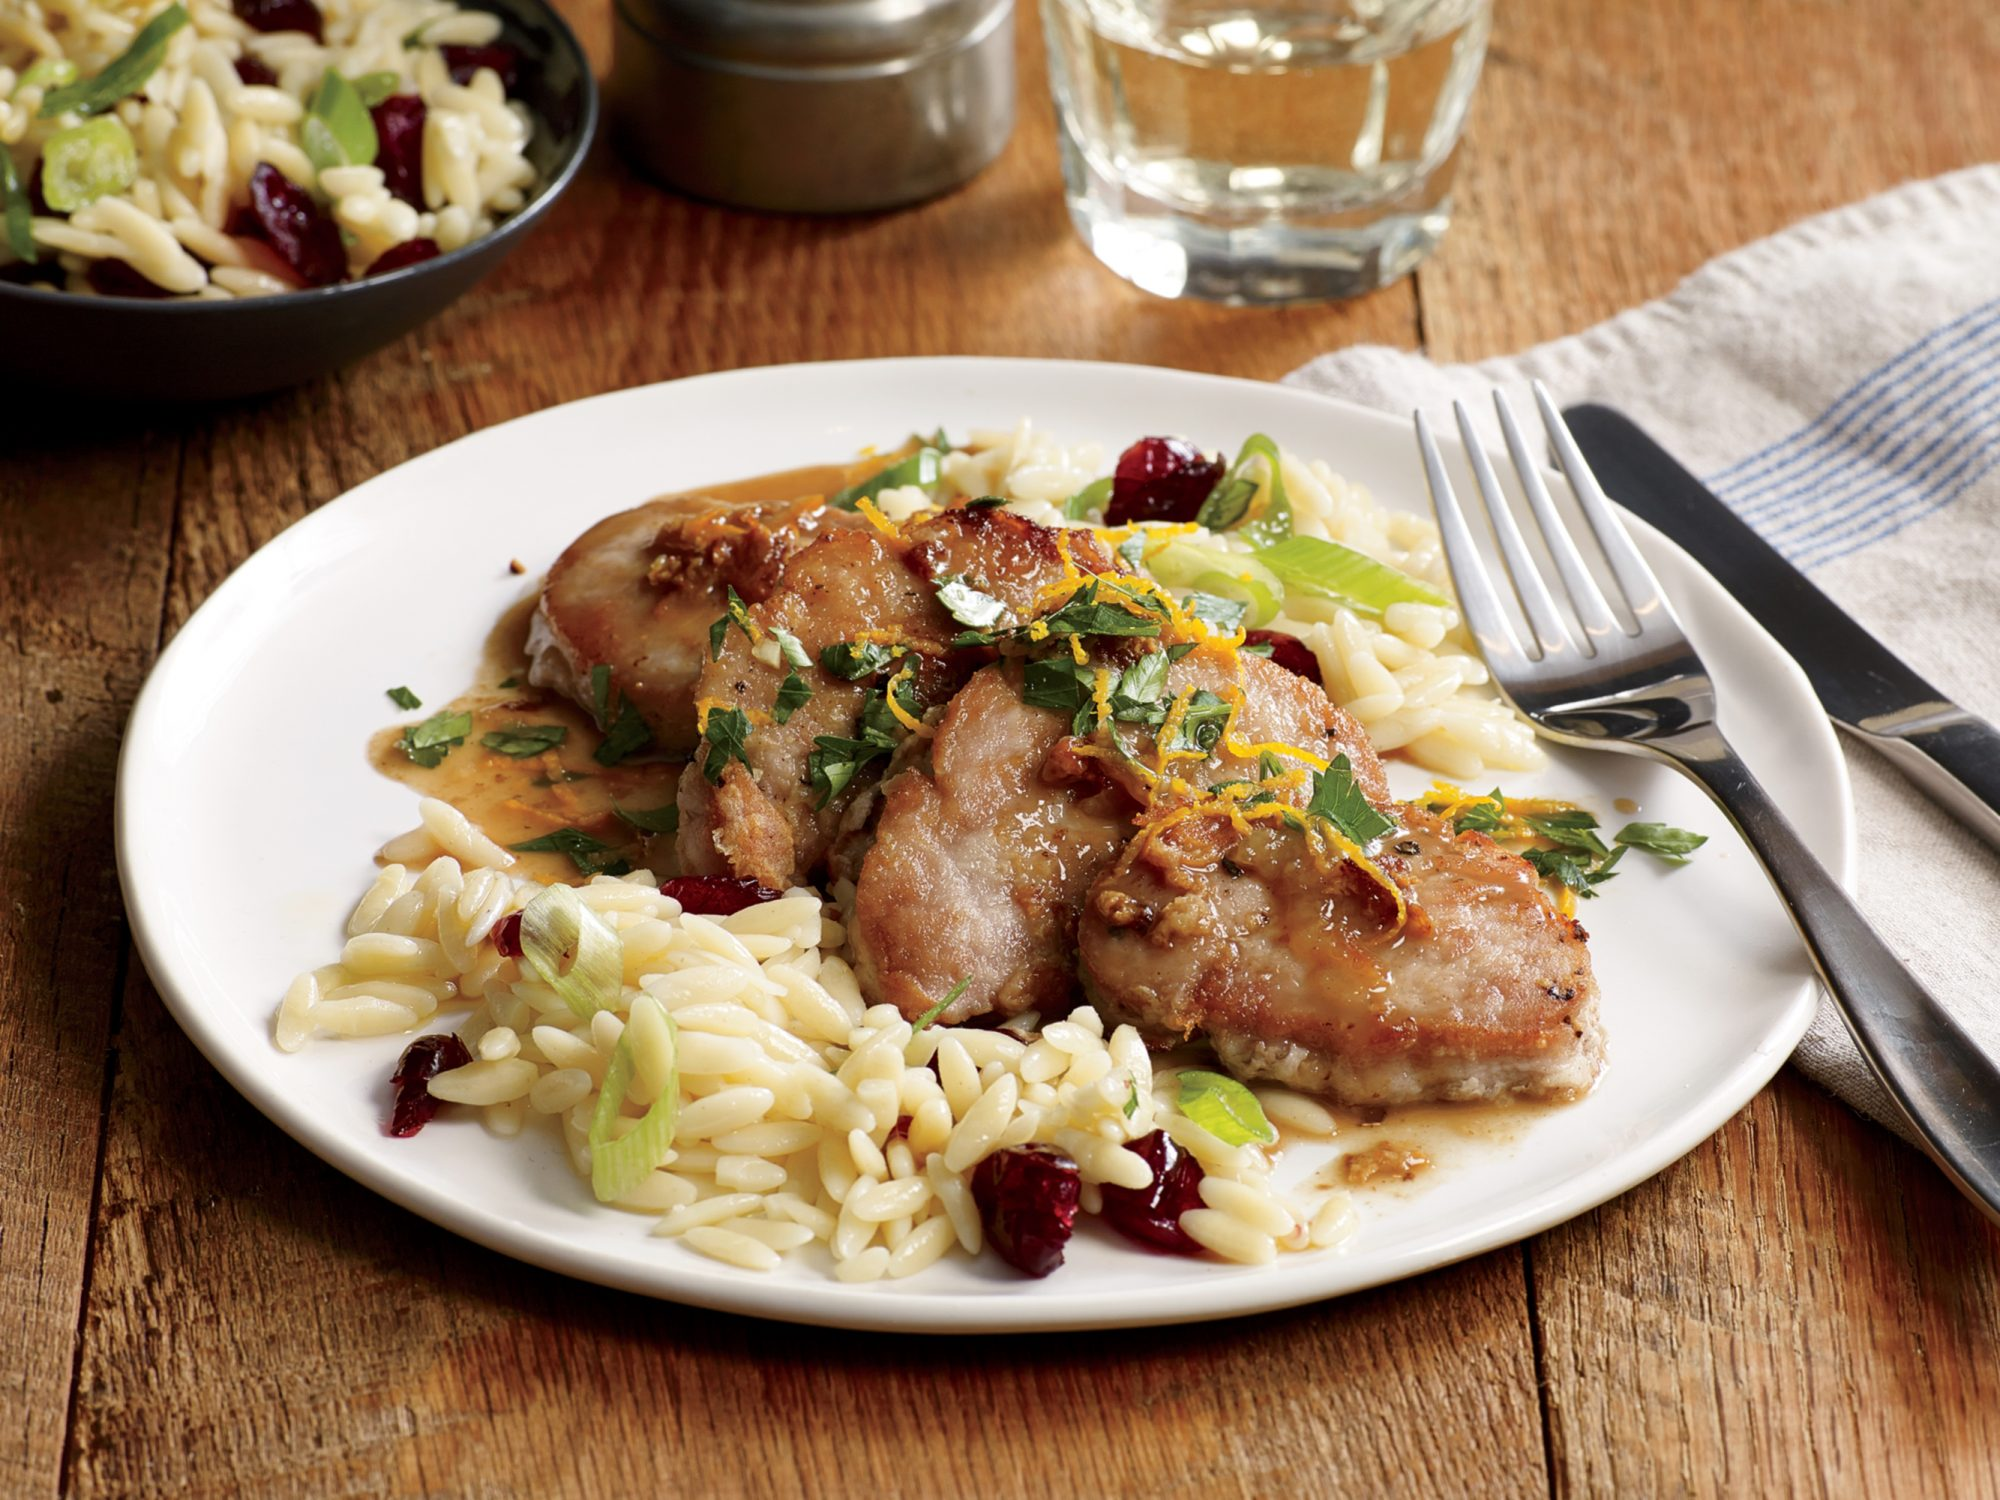 Thin or Thick Pork Chops—Which One Should I Buy? | MyRecipes